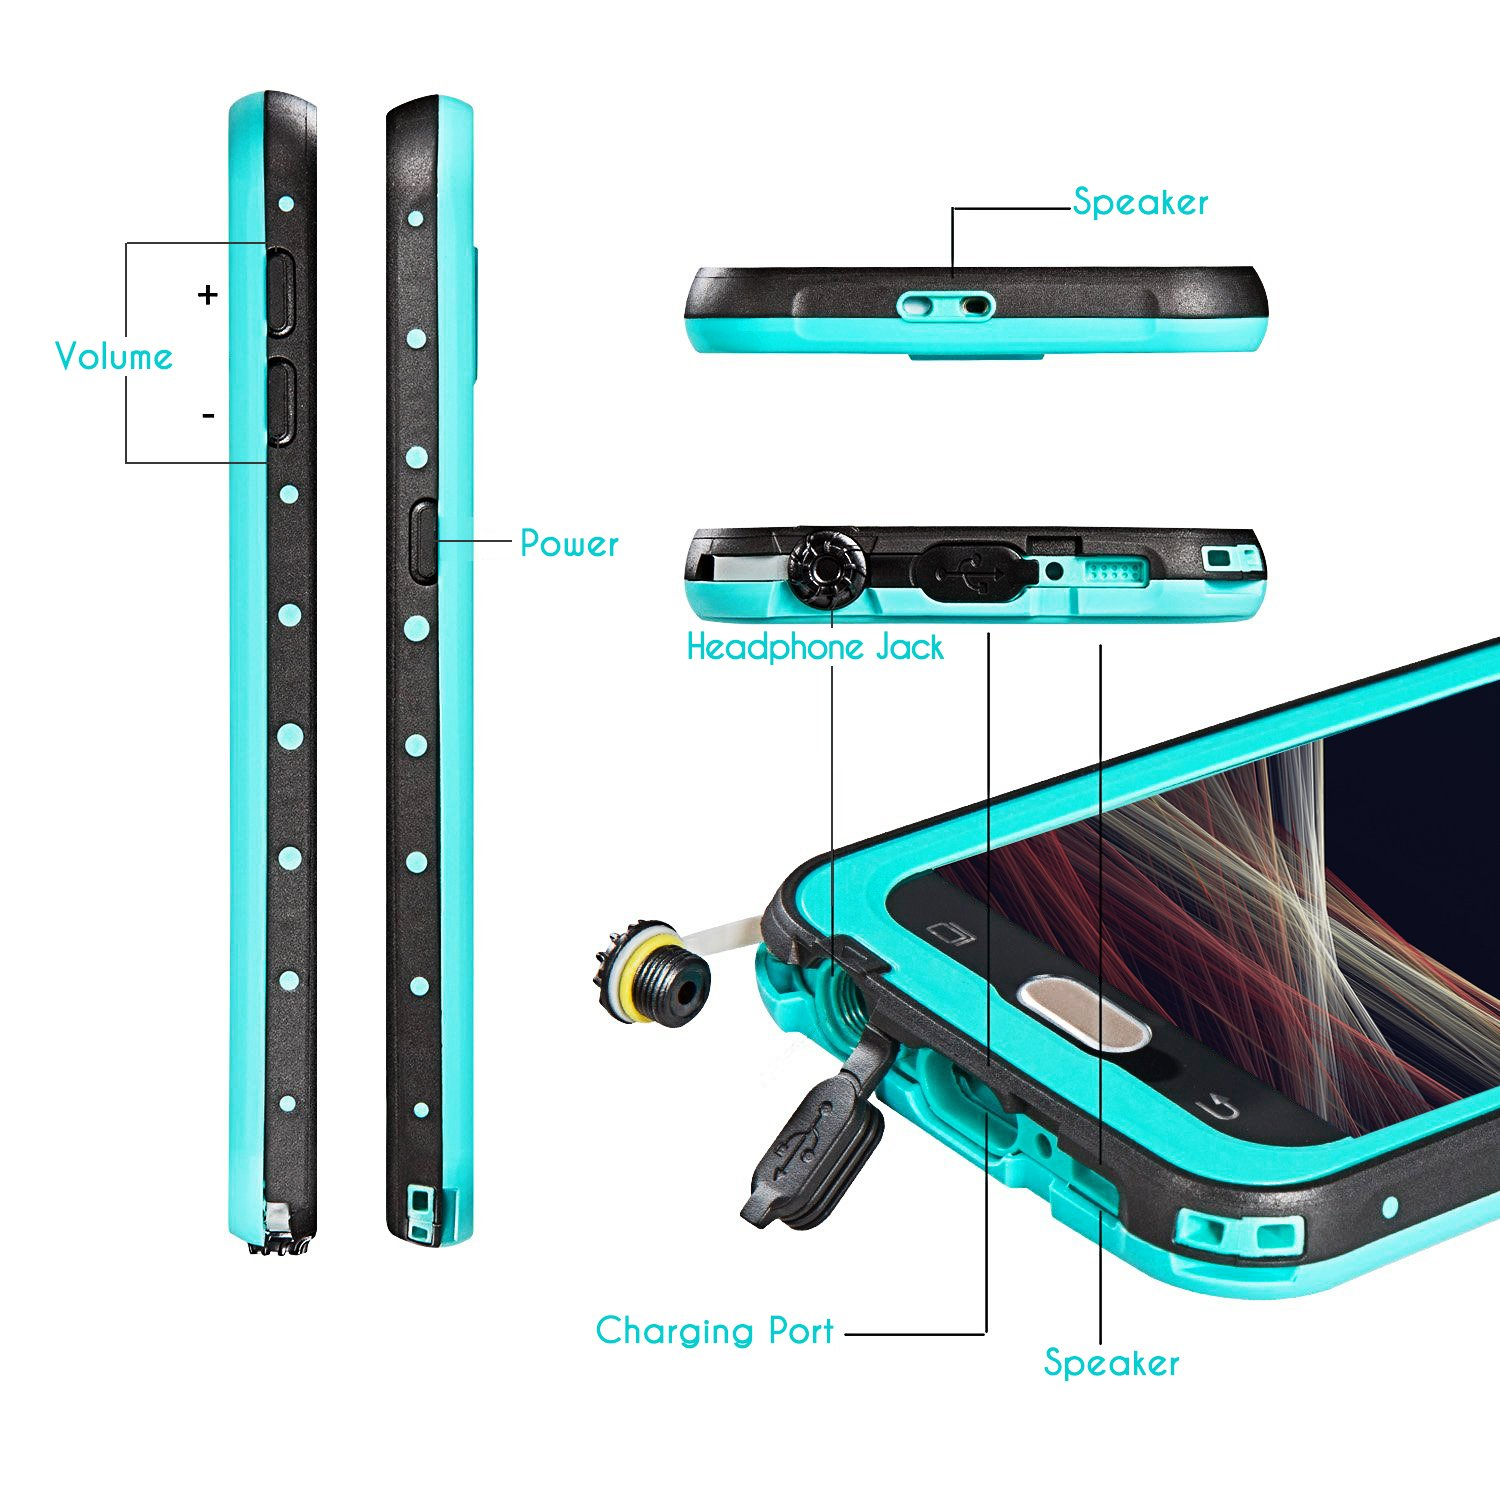 Fitfort Galaxy S6 Waterproof Caseip68 Certified With Lifeproof Samsung Fre Case 77 51242 Black Built In Screen Protector Extreme Durable Shockproof Full Sealed Cover Protective